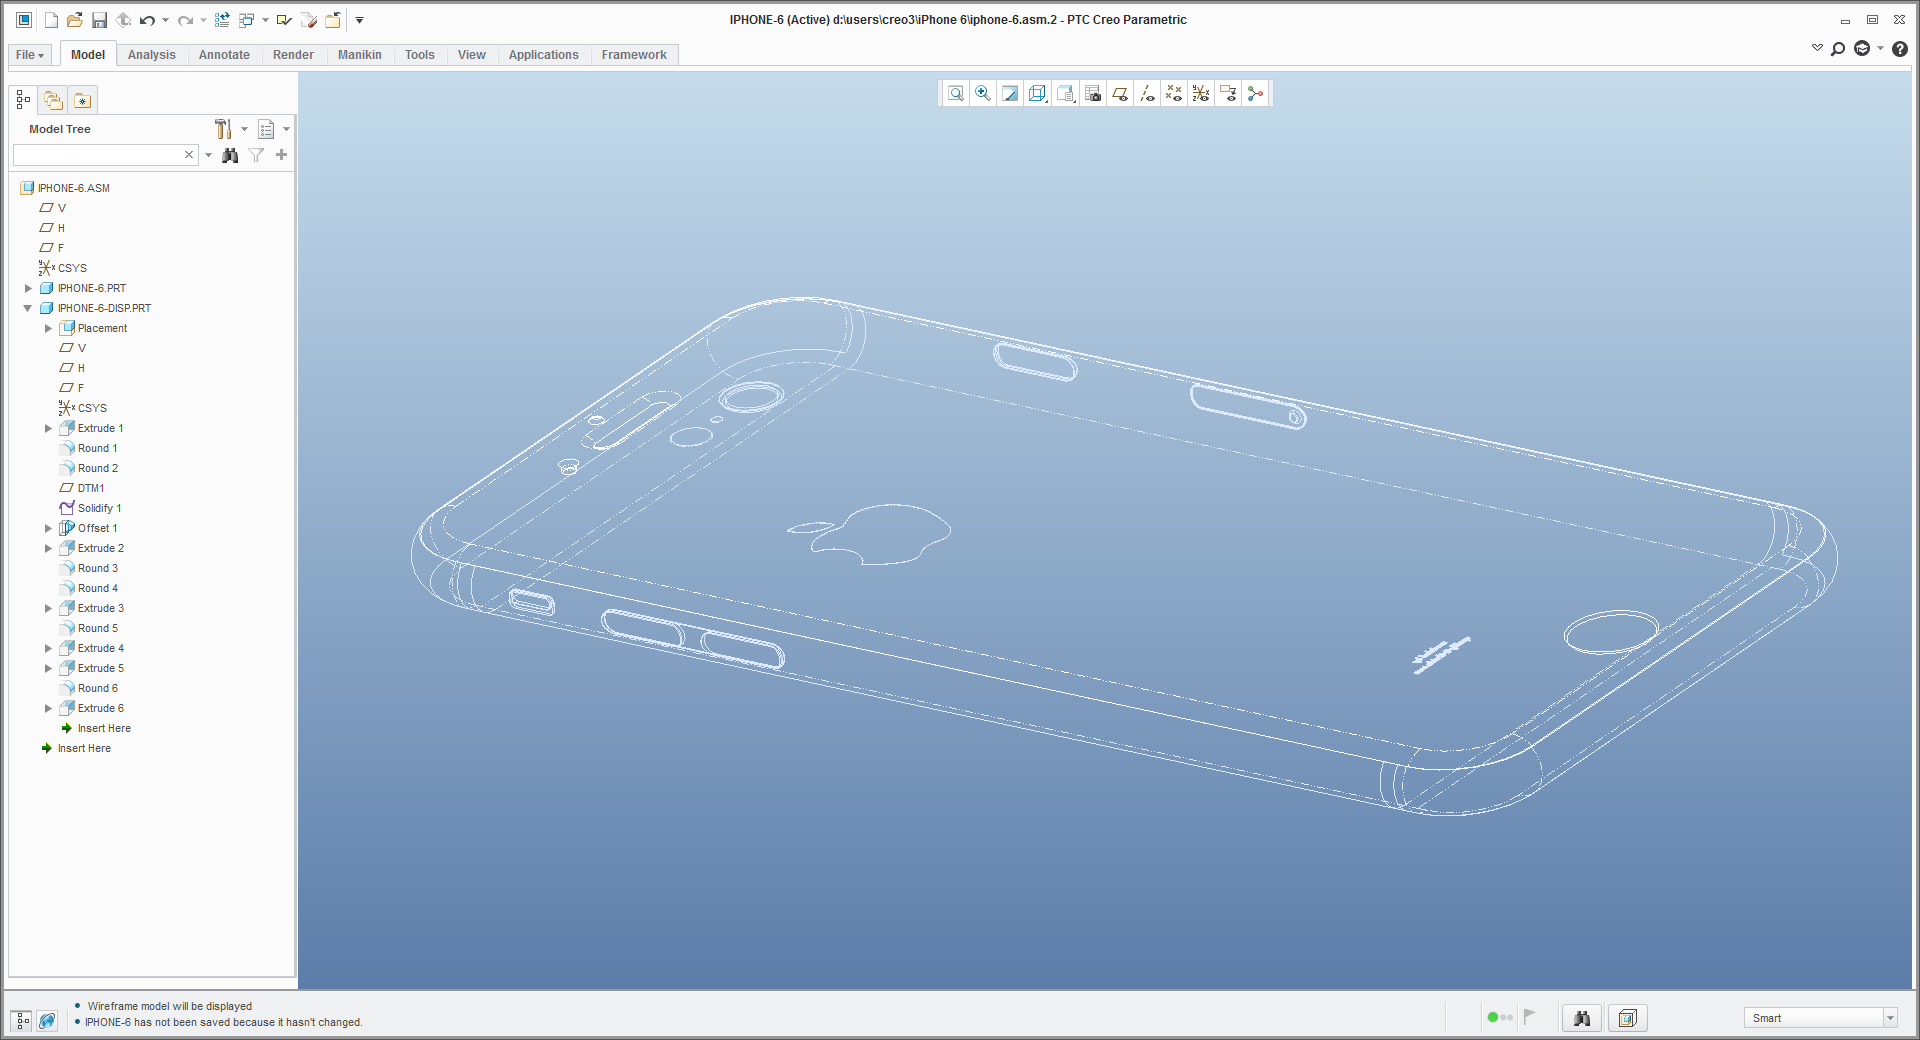 iPhone+6+-+creo_parametric_3.0+-+wireframe.png